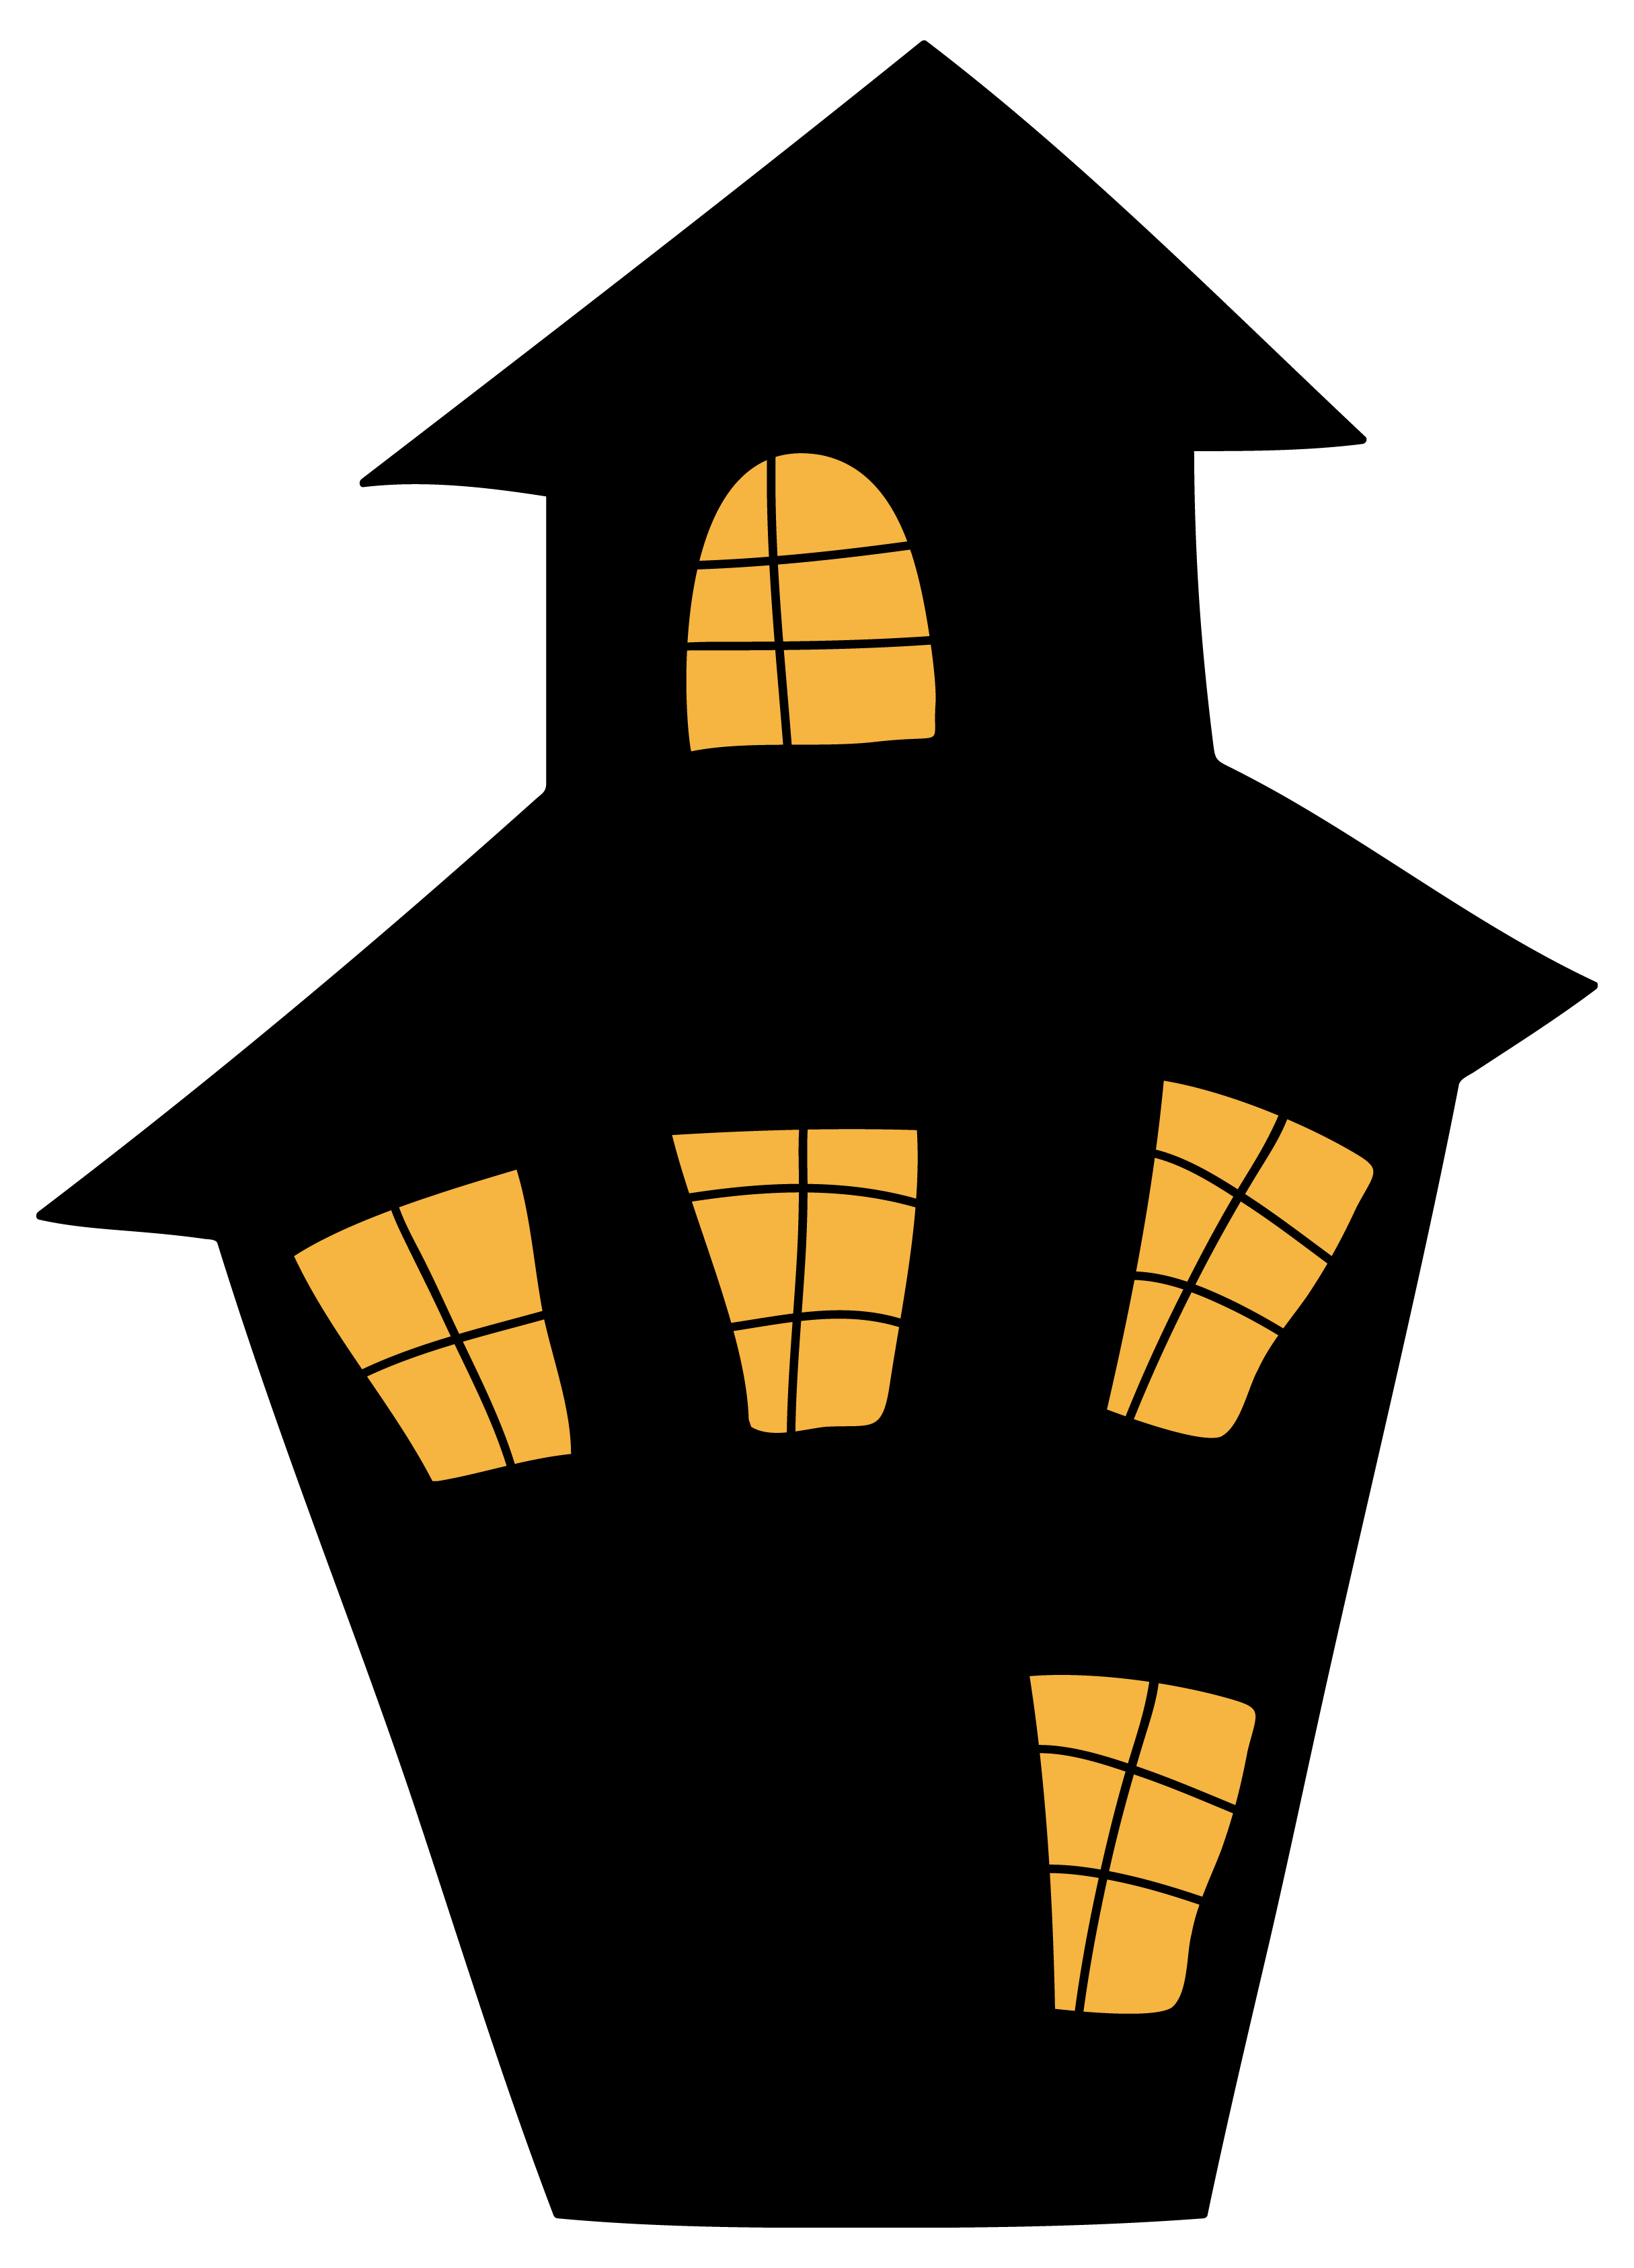 Clipart images of house svg freeuse House Clipart Png. House Clipart Png - Deltasport.co svg freeuse